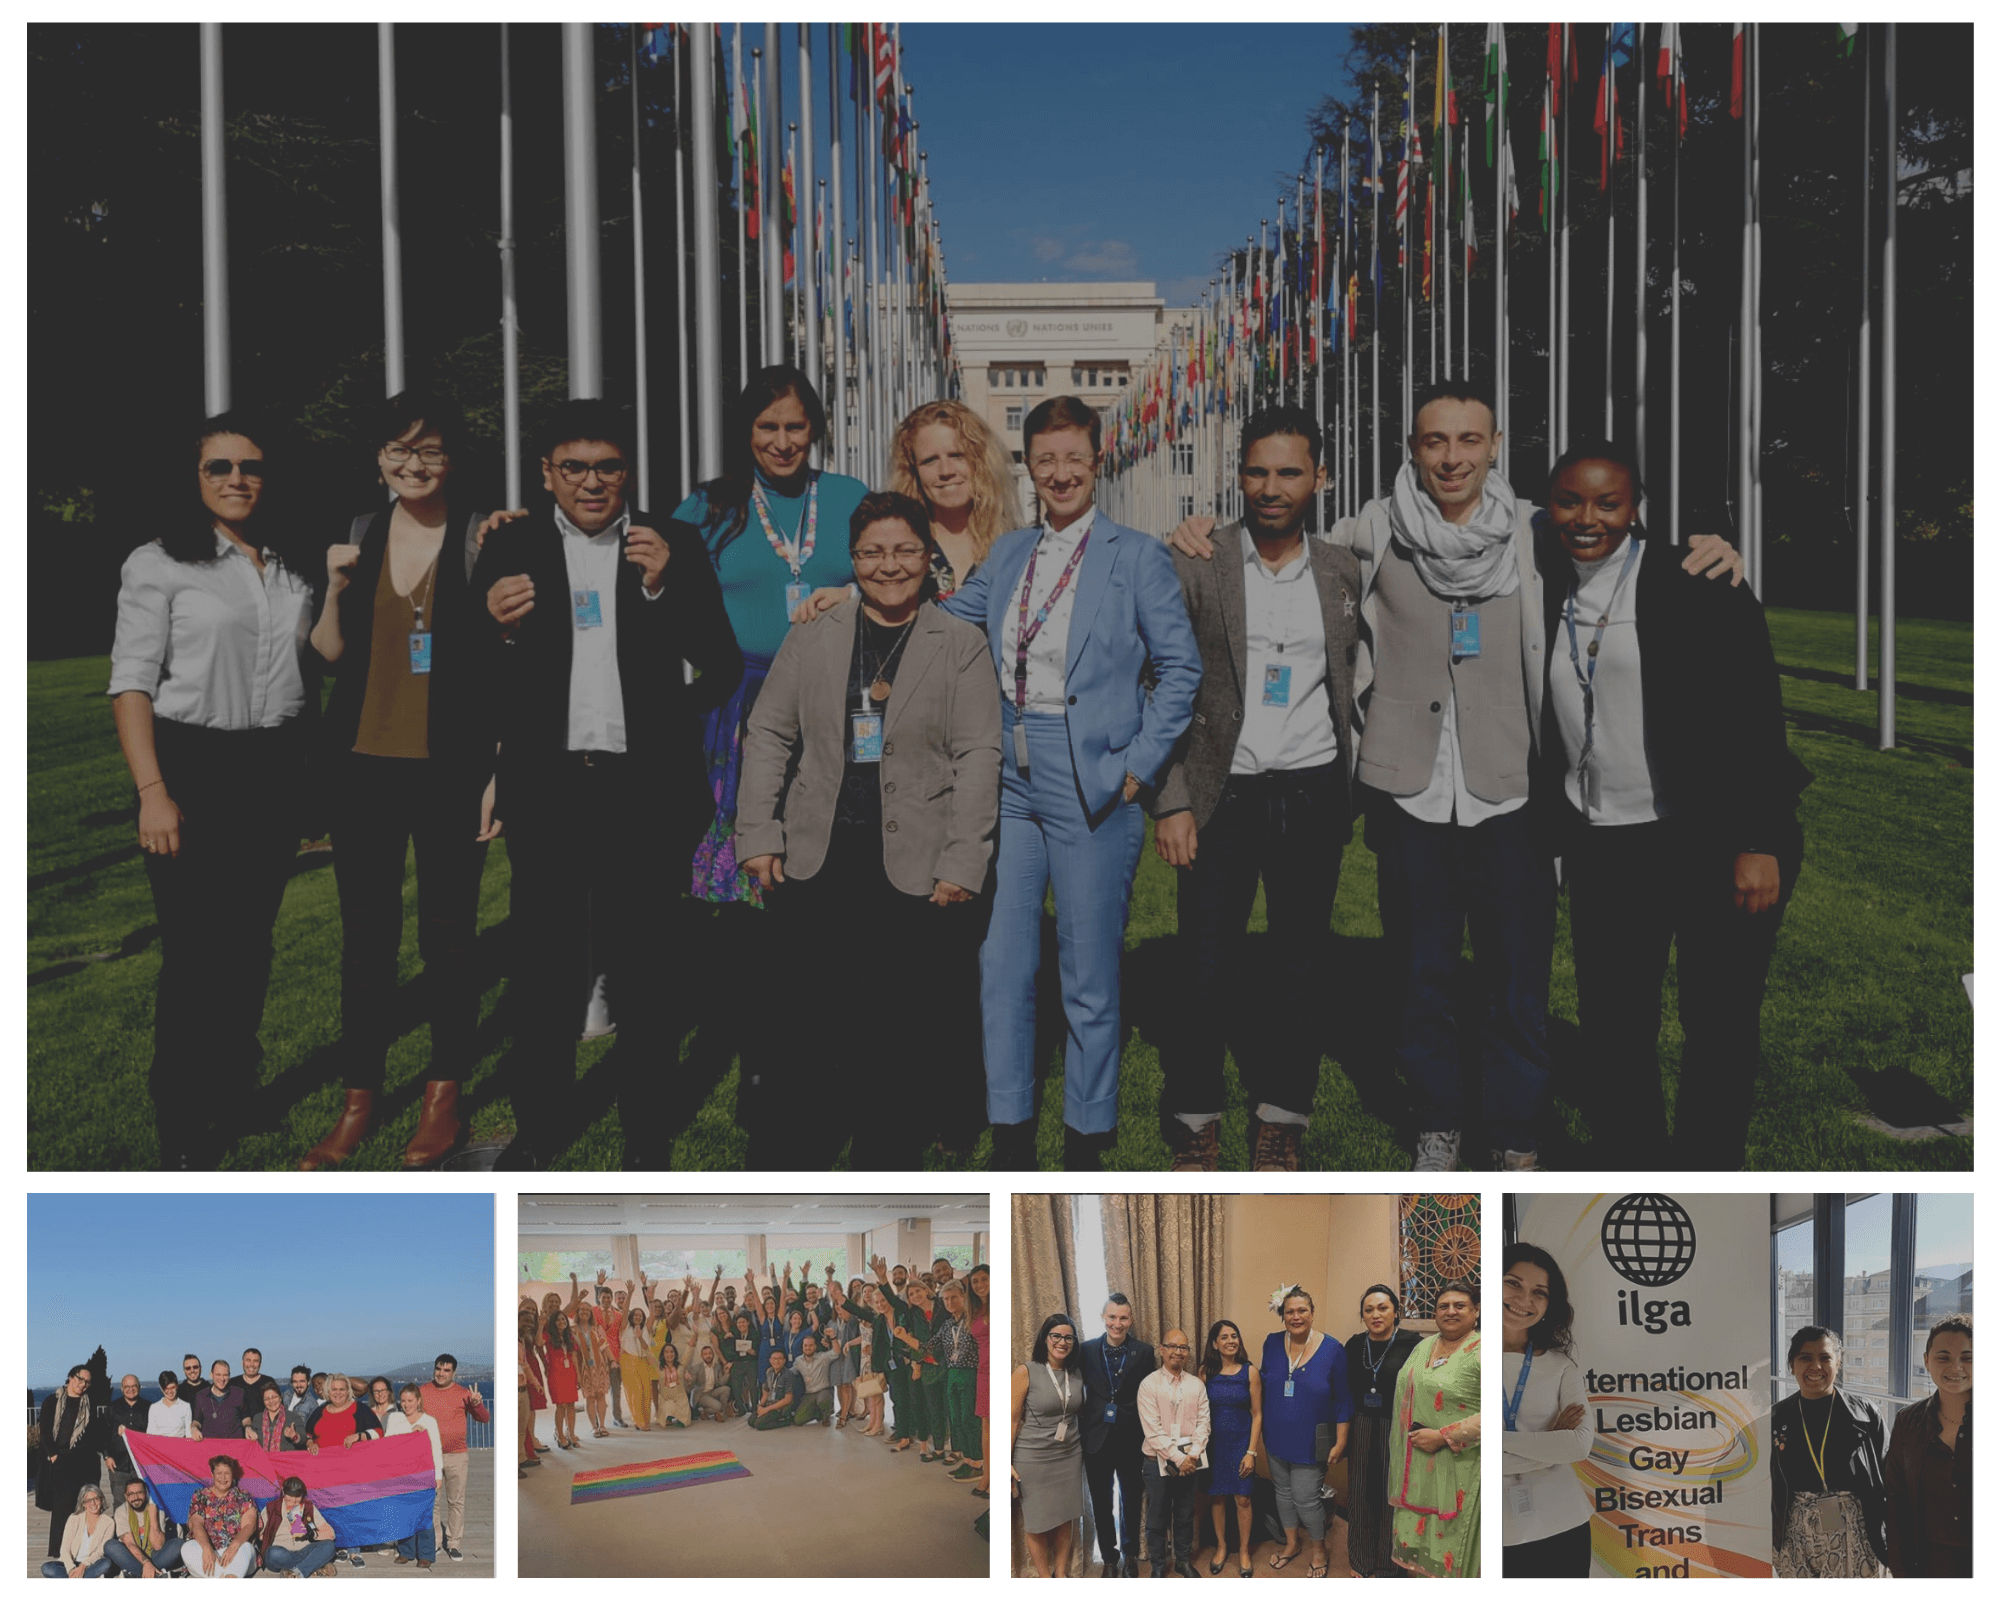 The picture groups together five different photos, showing Activists engaging with ILGA World in 2019